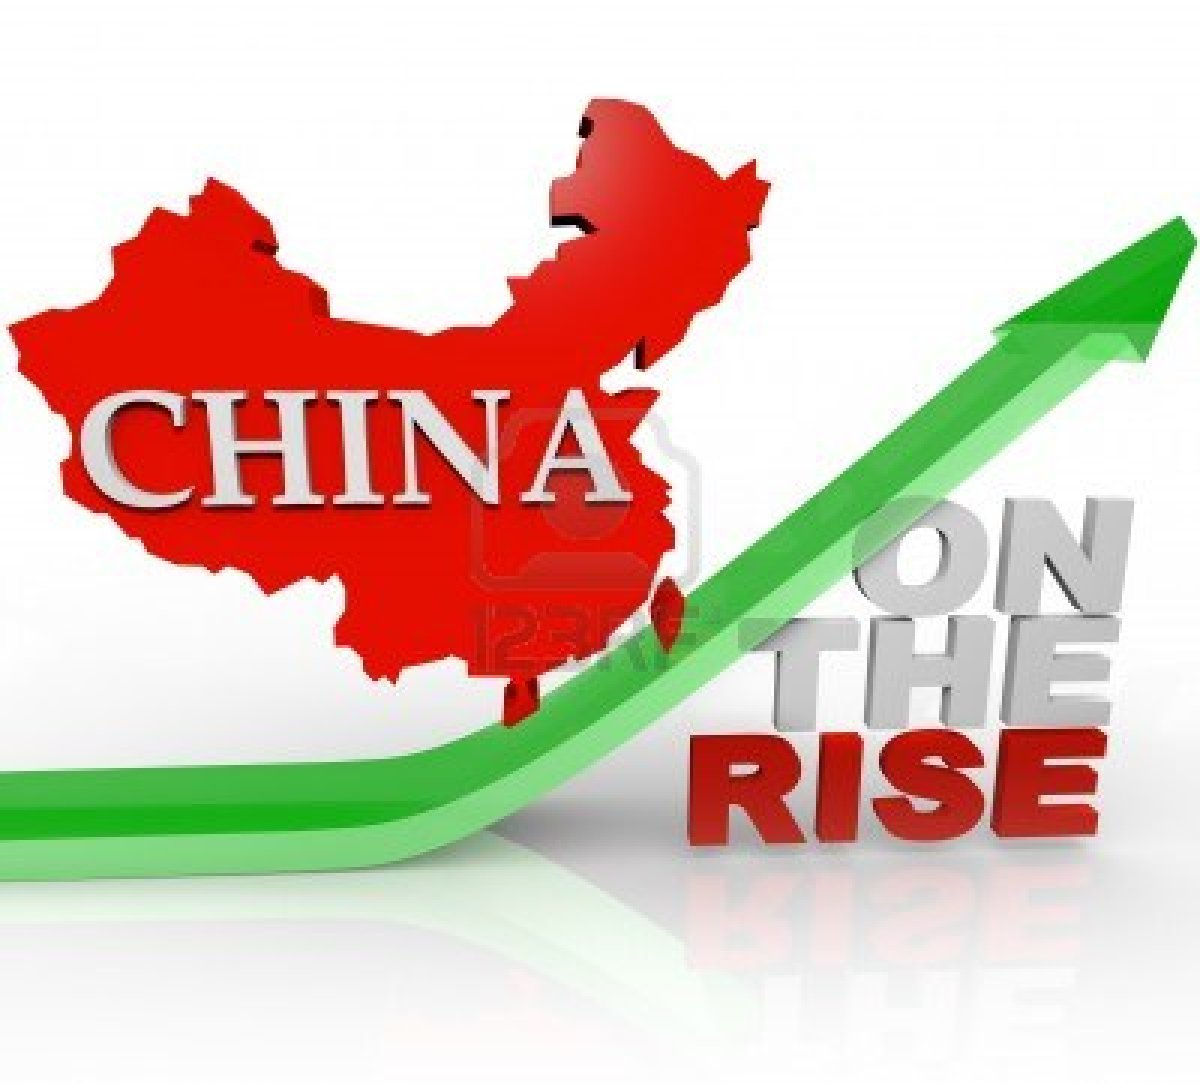 on 8th january a report on national health after studying various aspects of 100 nations the report foresee china likely to surpass the united states